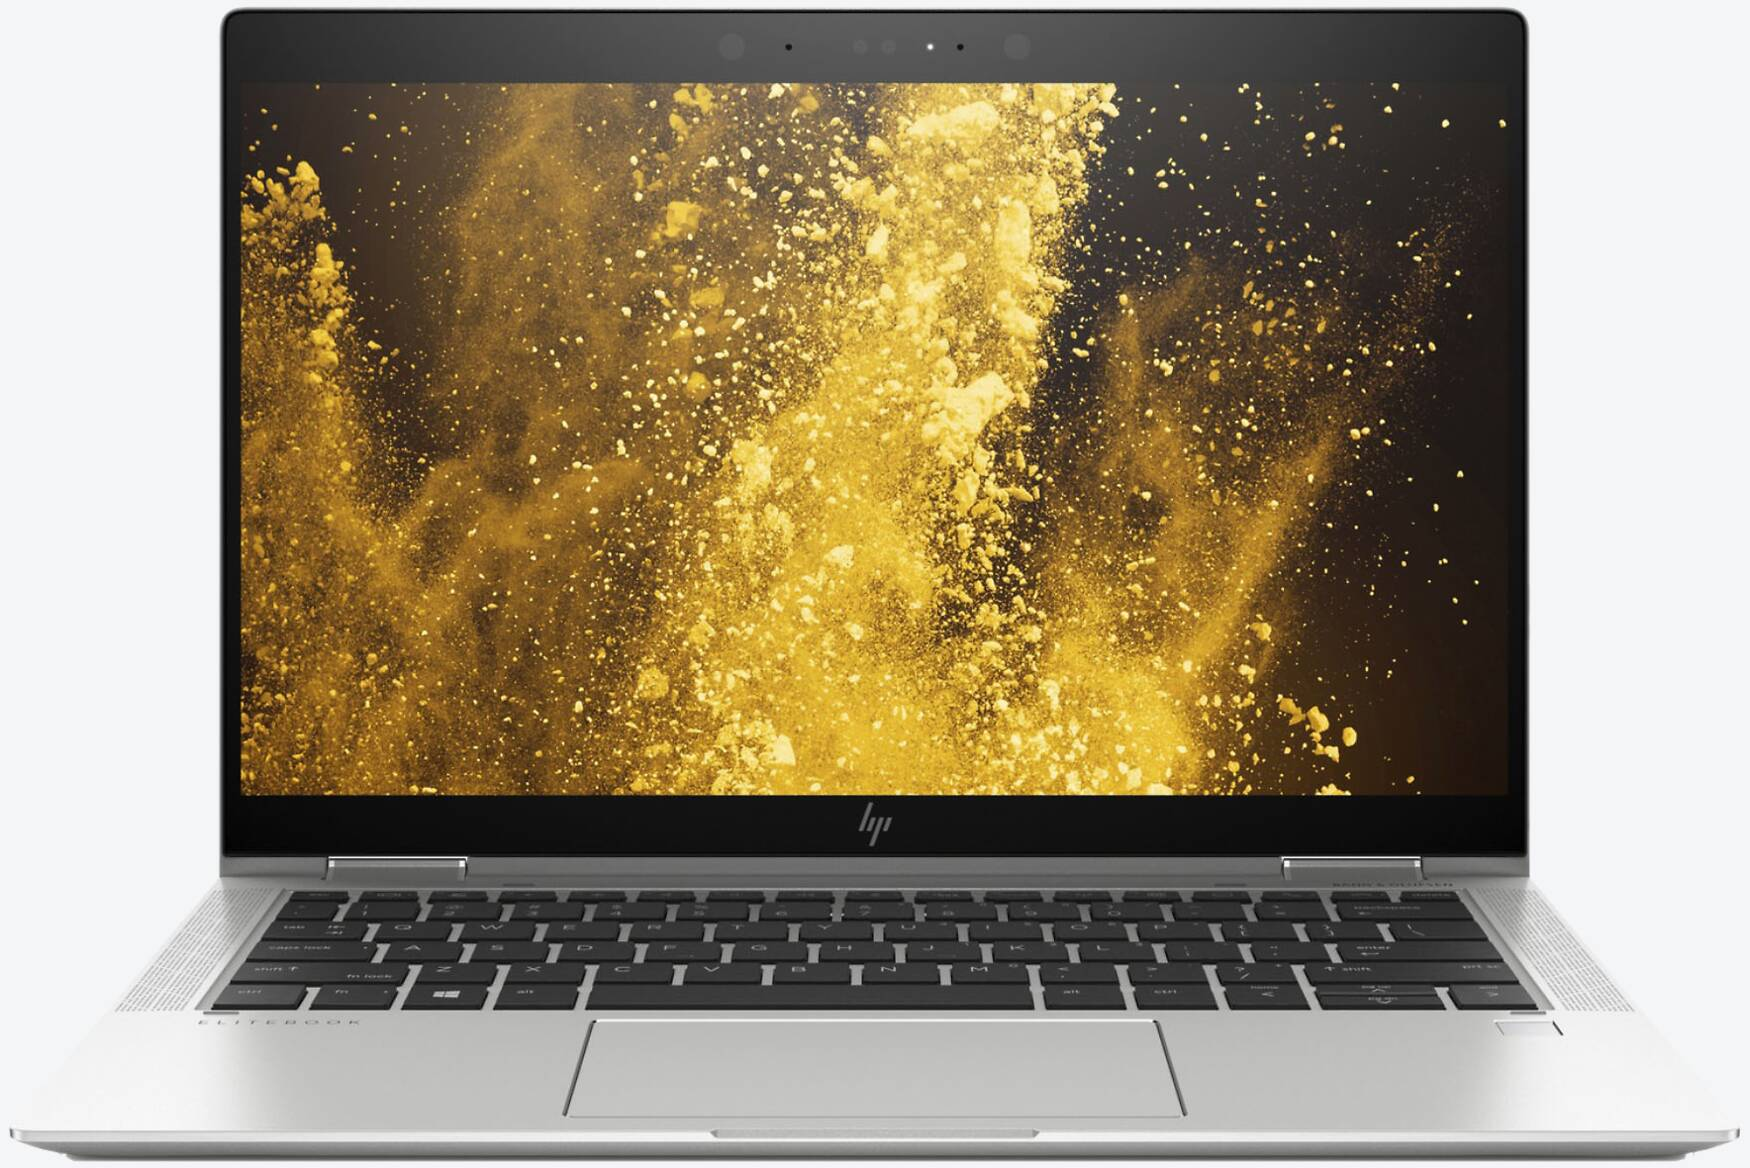 HP EliteBook x360 1030 G3 LTE (4QY27EA)